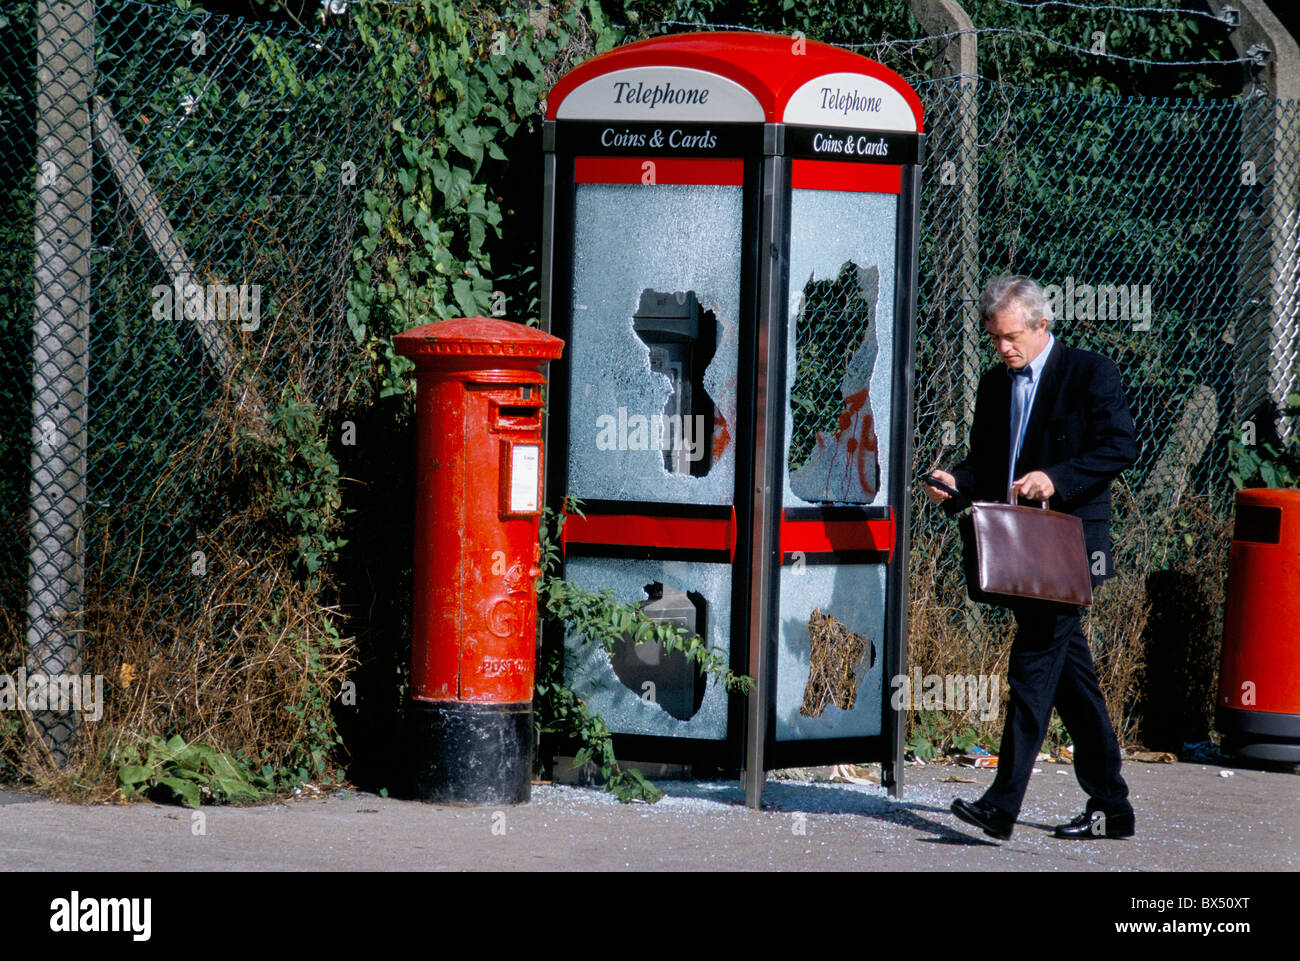 A businessman passing a vandalised British Telecom payphone booth on a South London street. - Stock Image